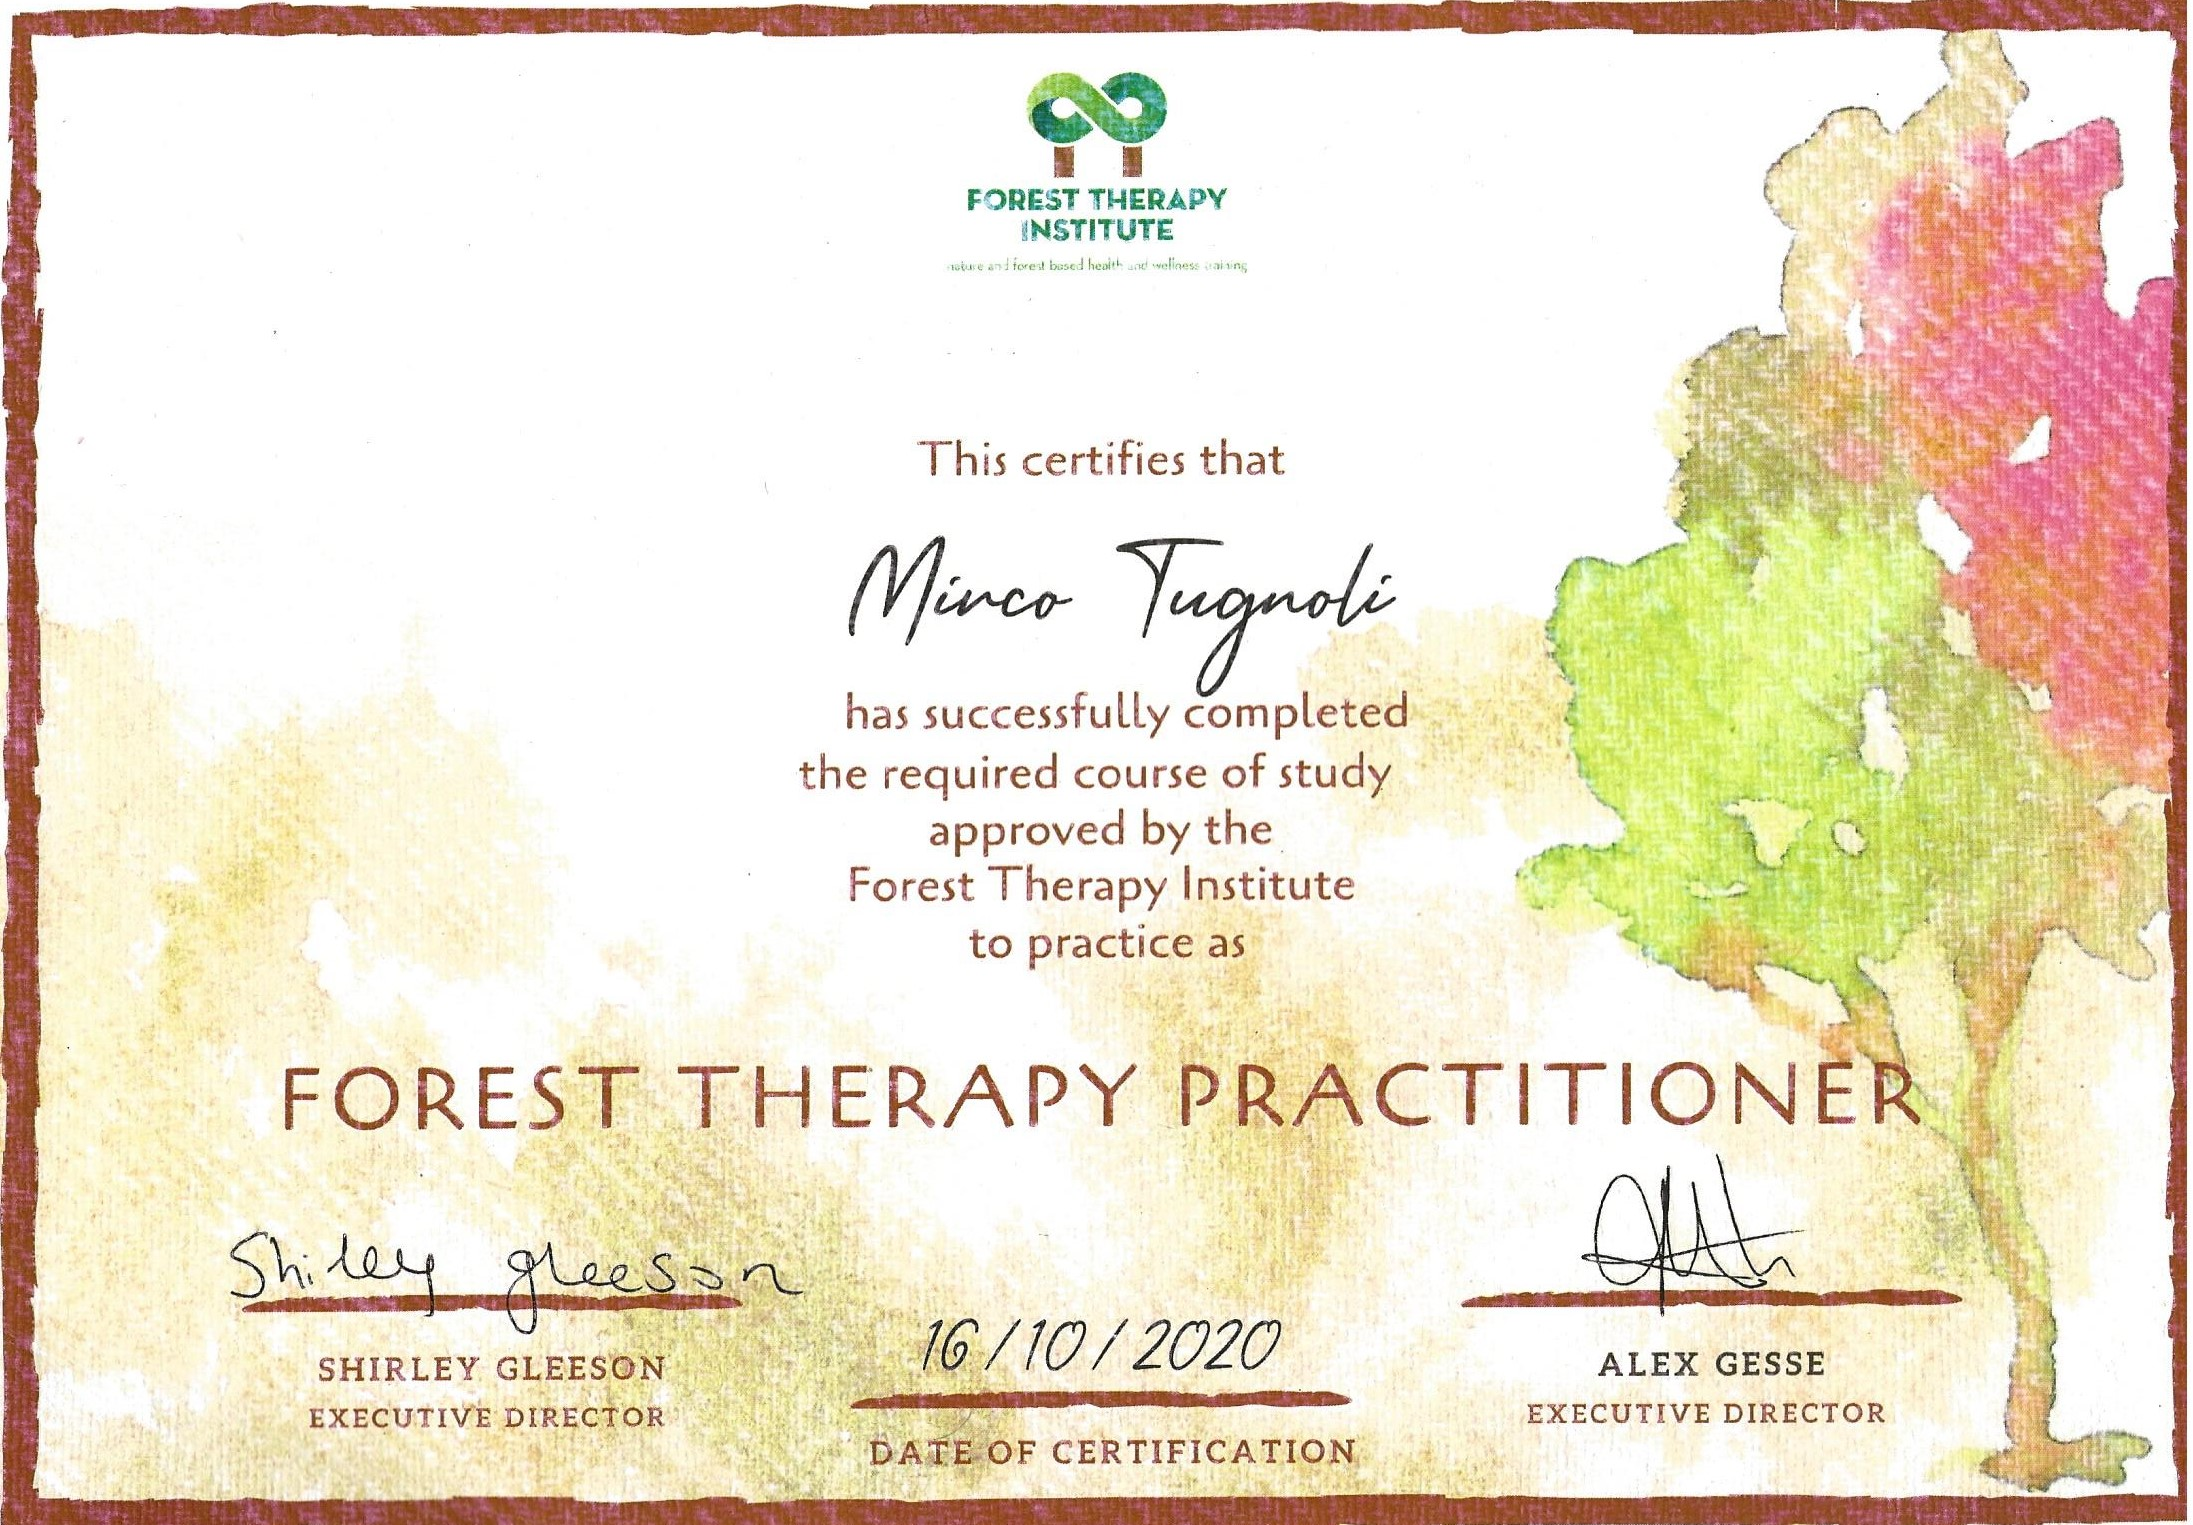 certificazione_foresttherapy_mod